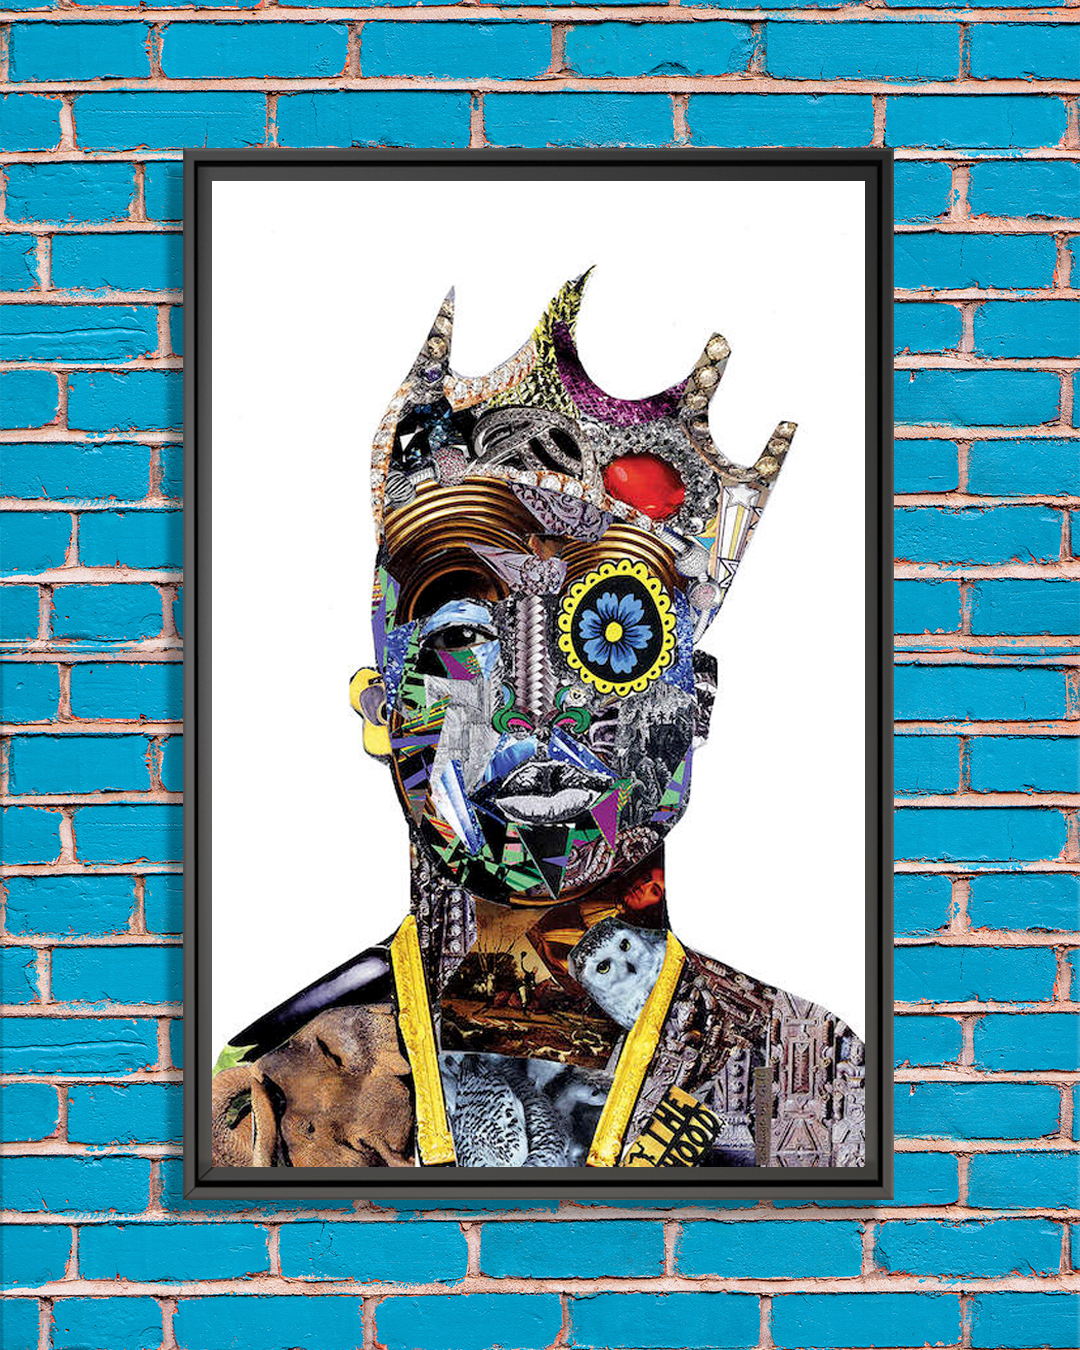 portrait of Tupac wearing a crown made of collaged pieces